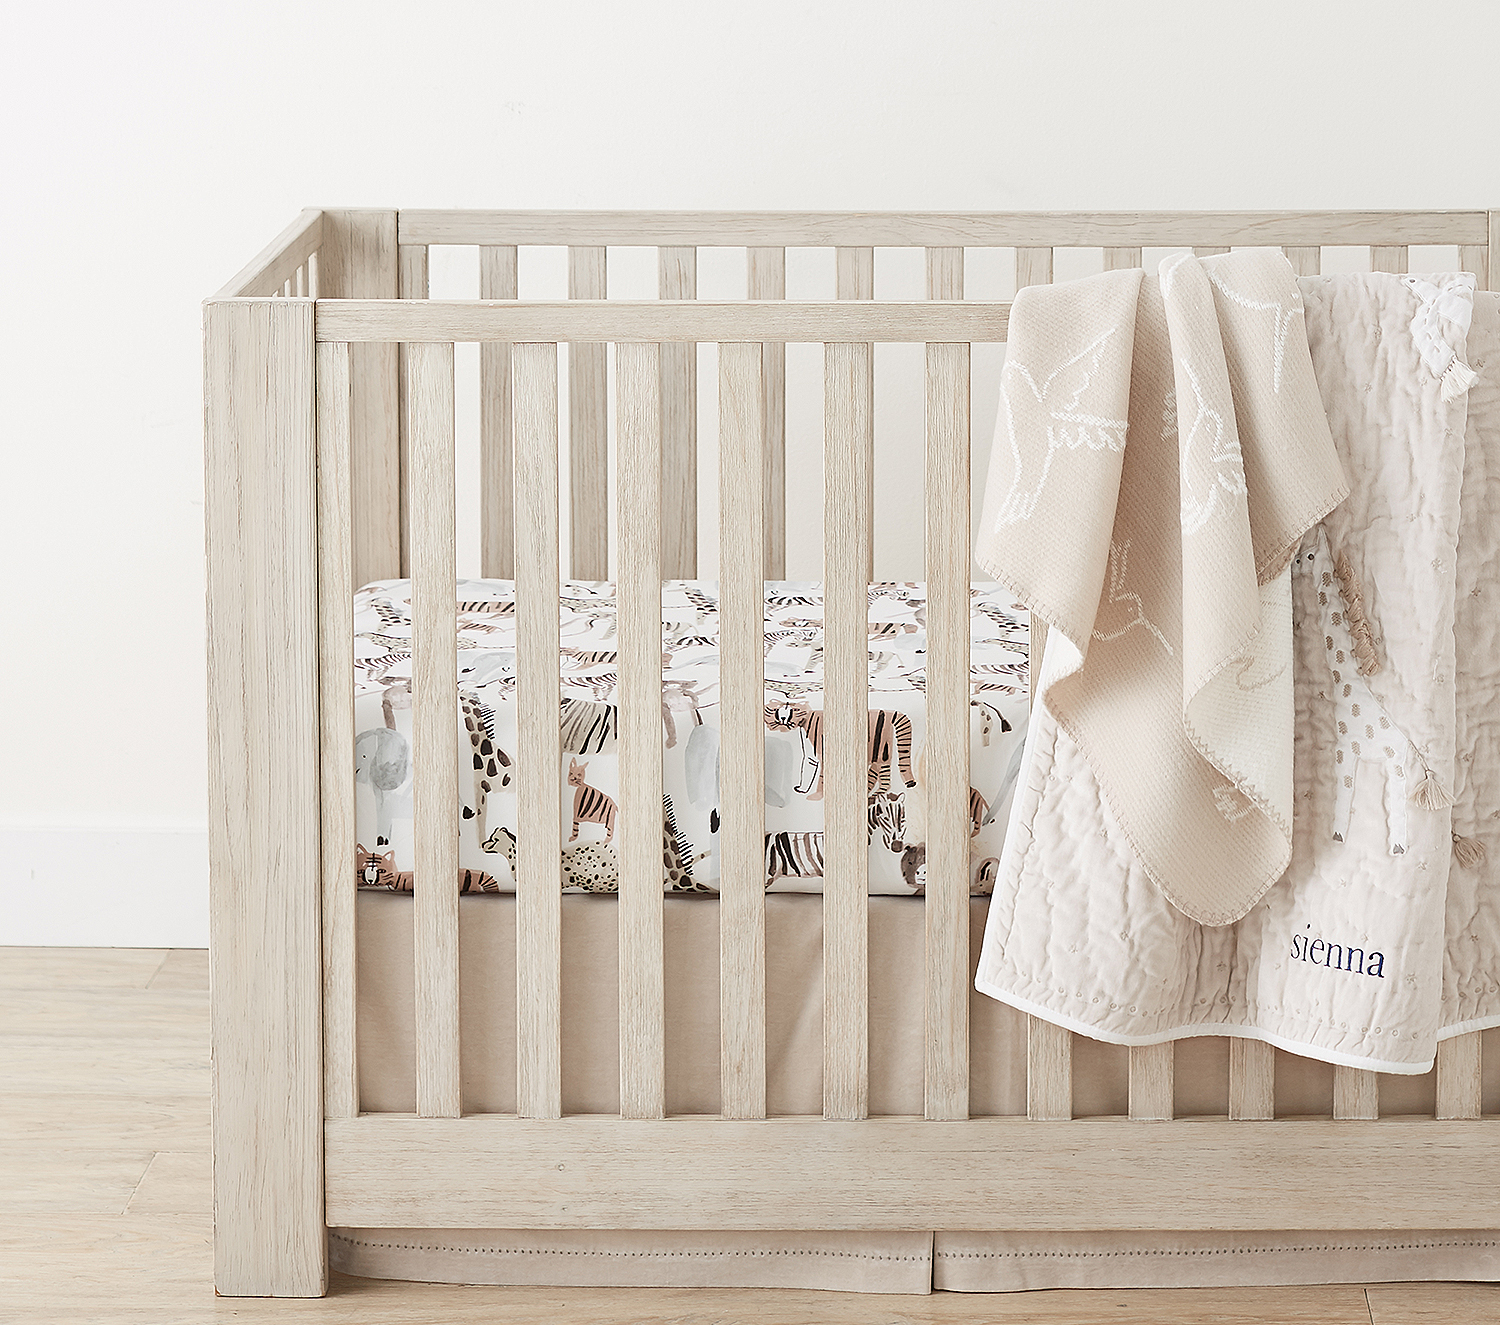 Jeremiah Brent's pottery barn kids collection